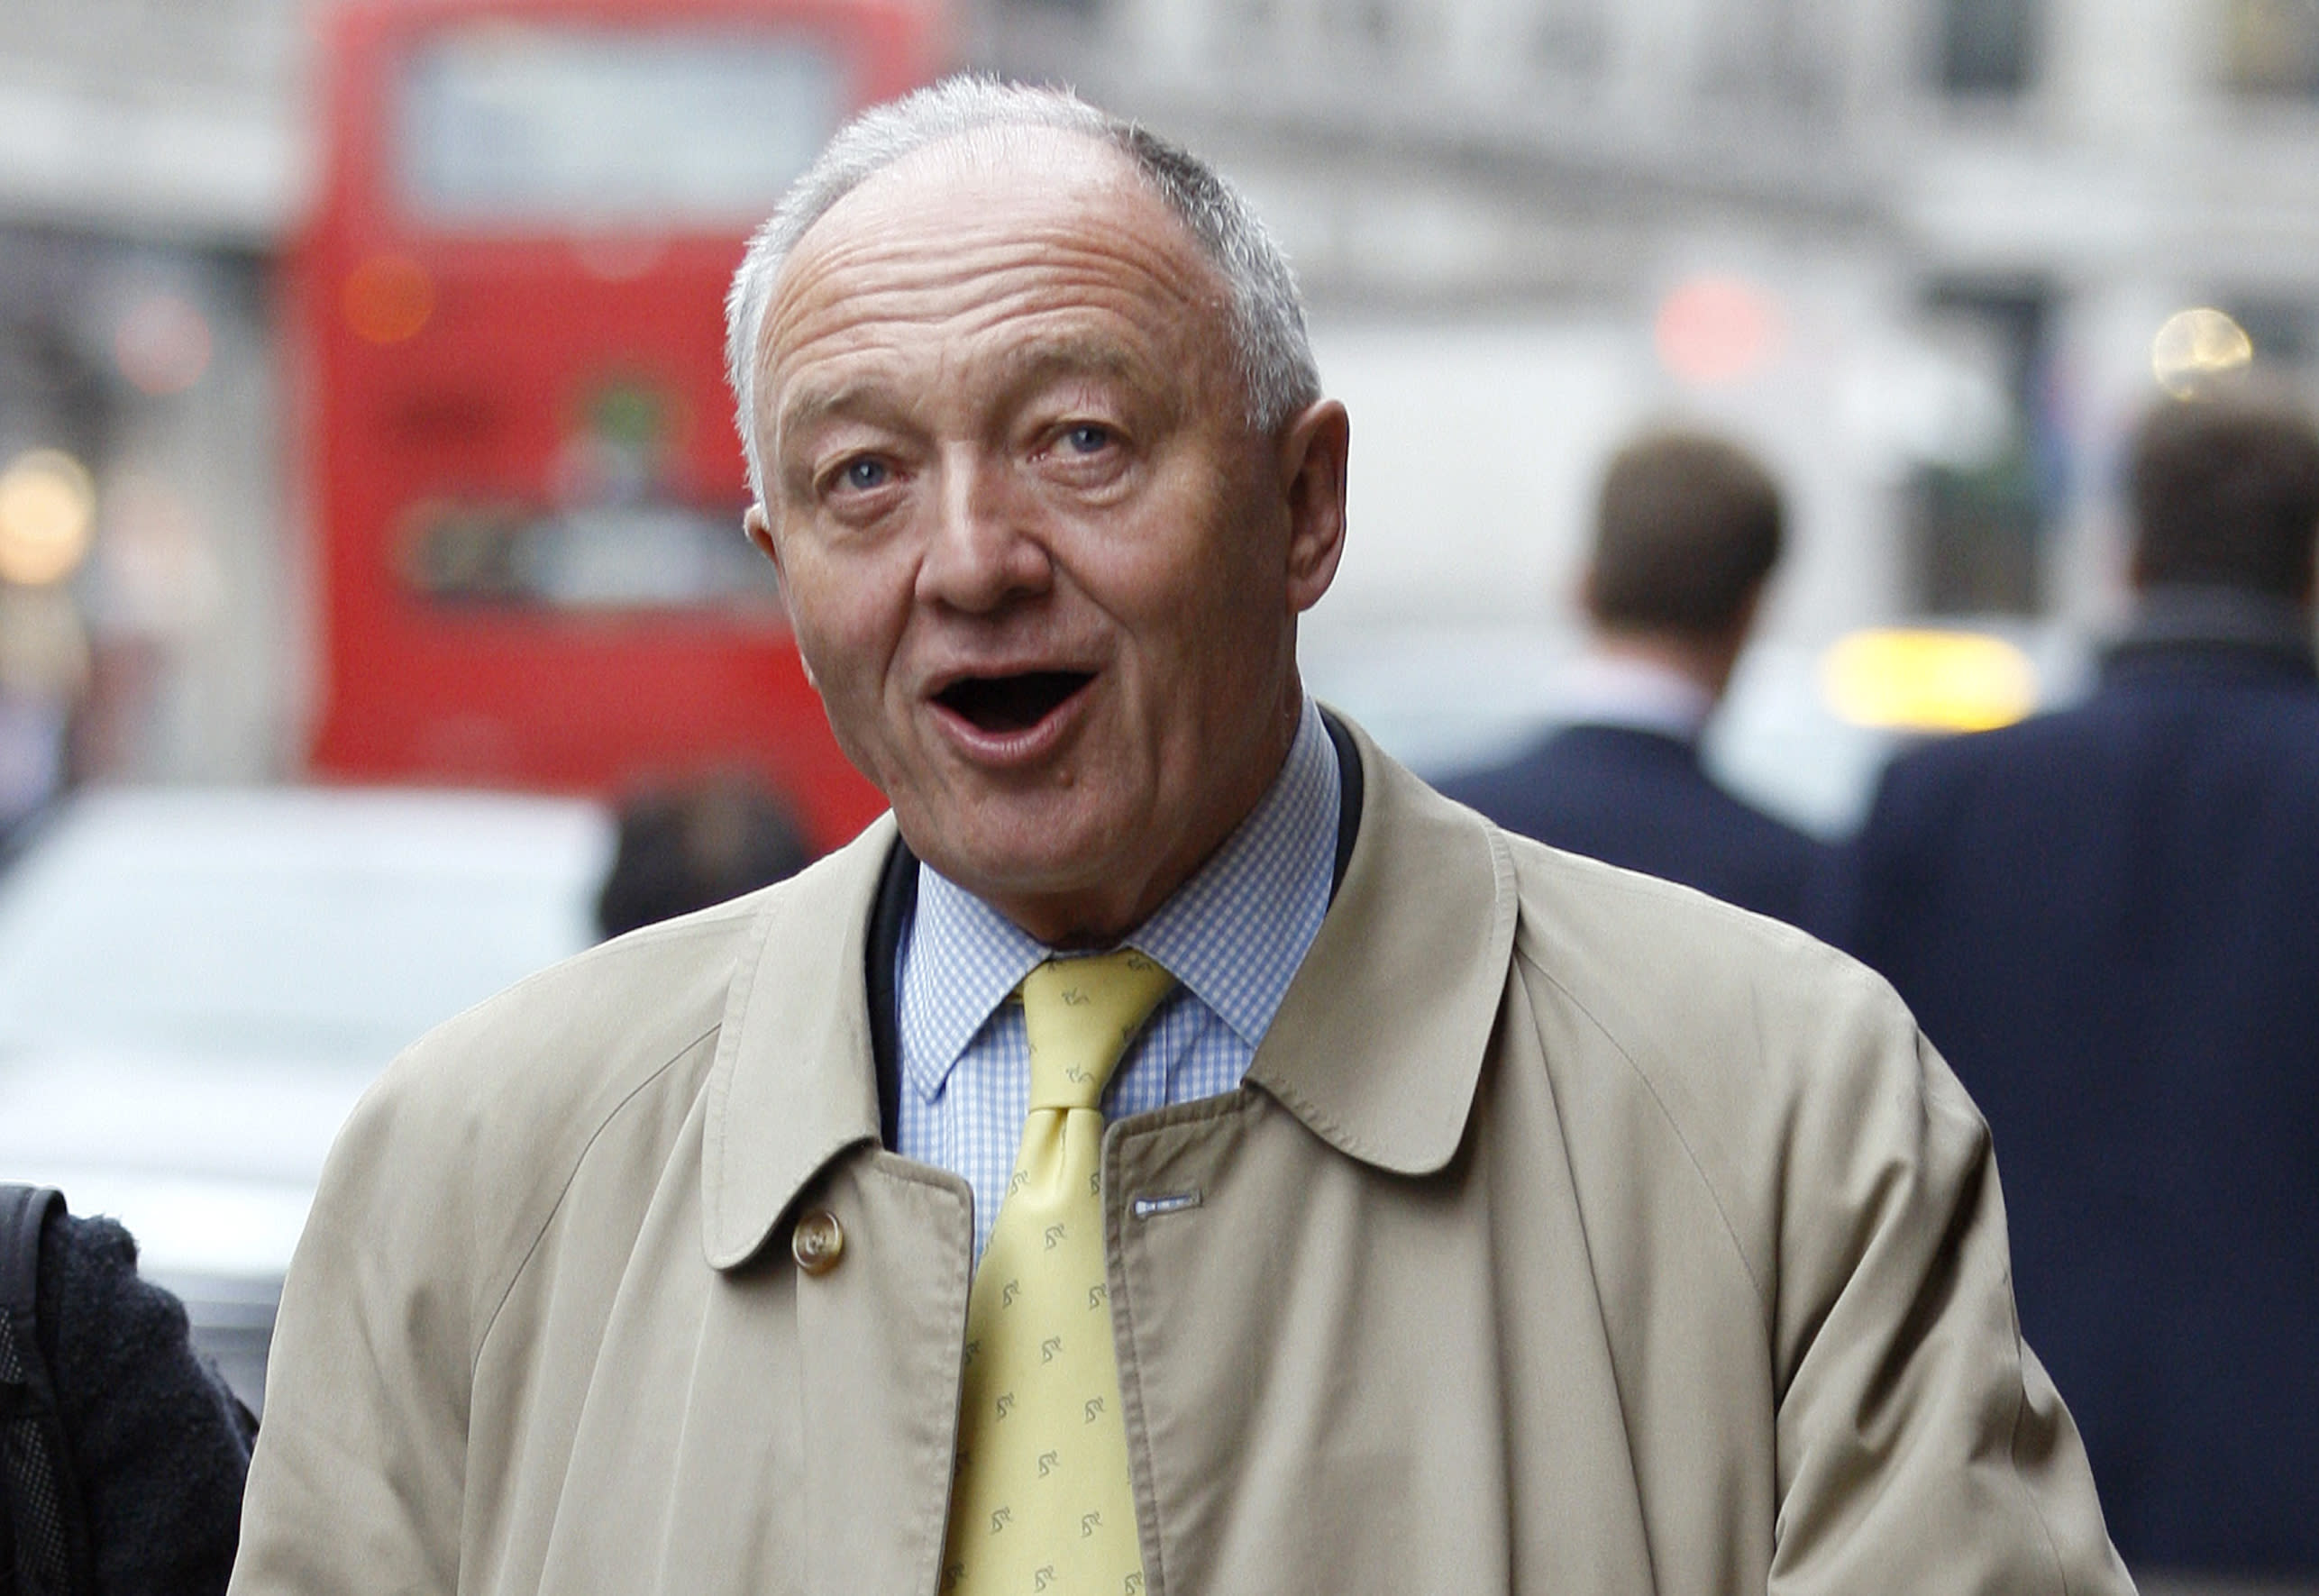 Former London mayor Ken Livingstone told 'he should know better' after blocking tube door with his foot